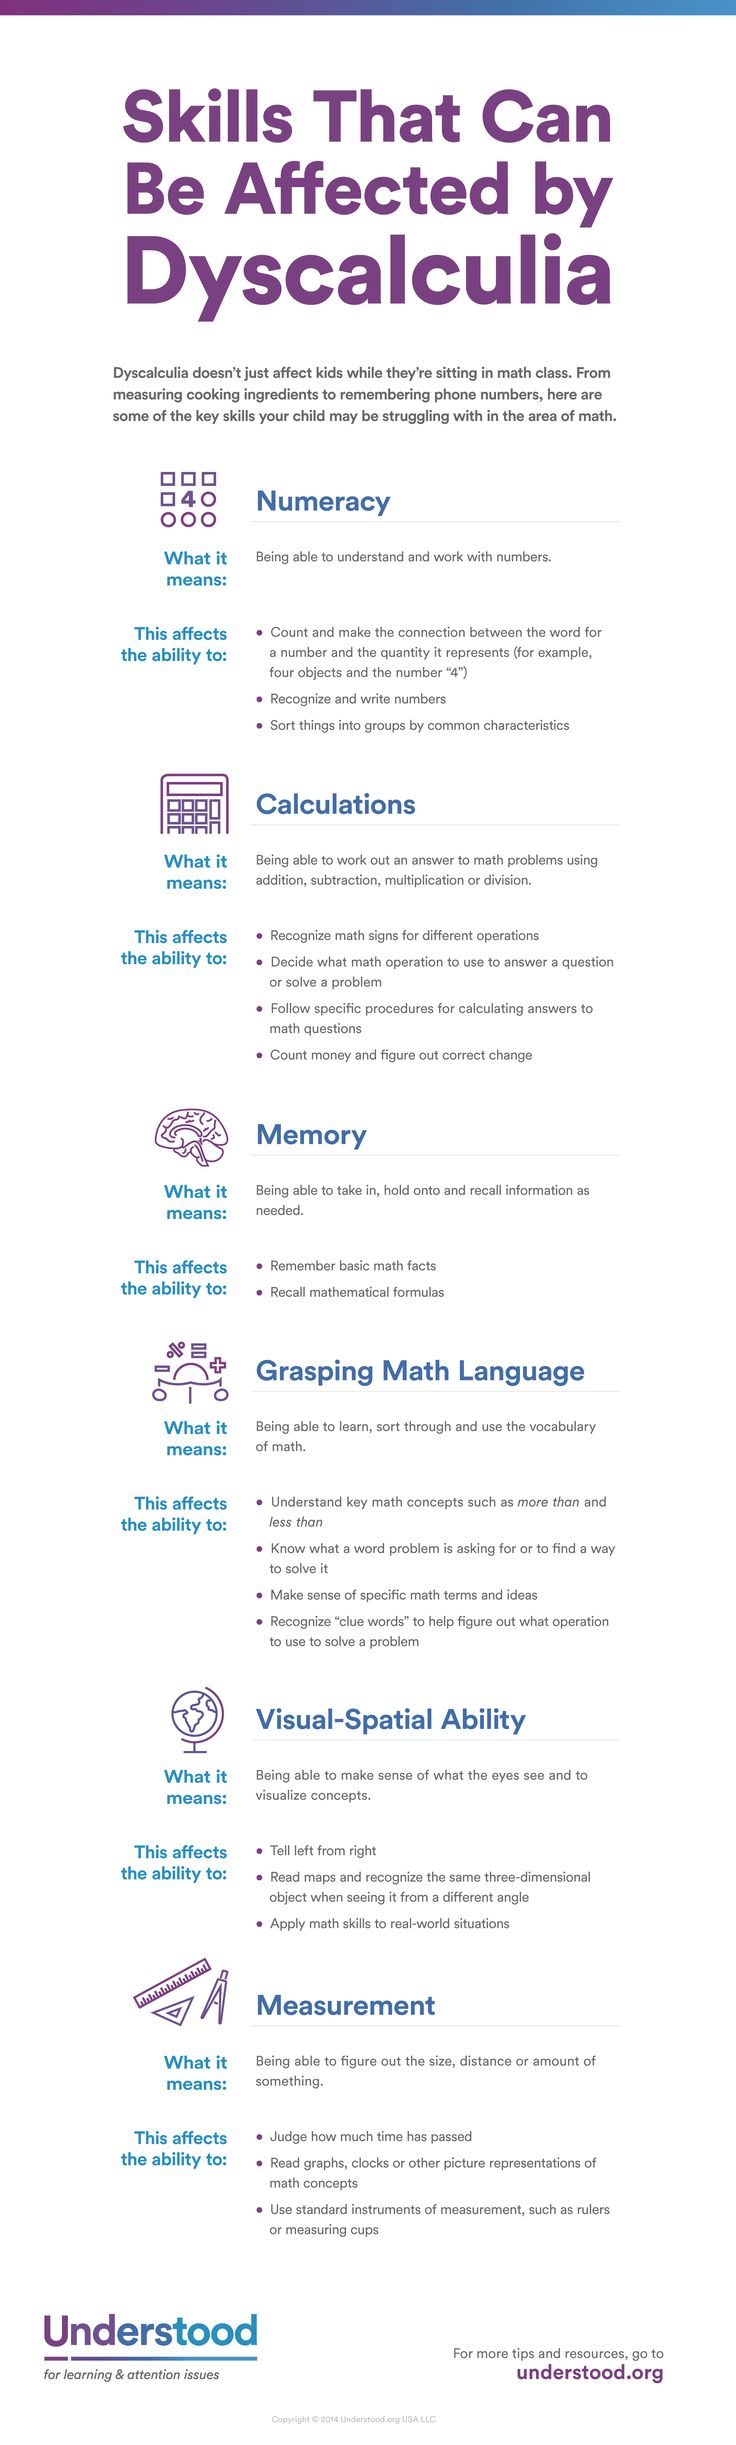 Dyscalculia doesn't just show up in math class. From measuring ingredients to remembering phone numbers, here are skills affected by math learning disabilities.